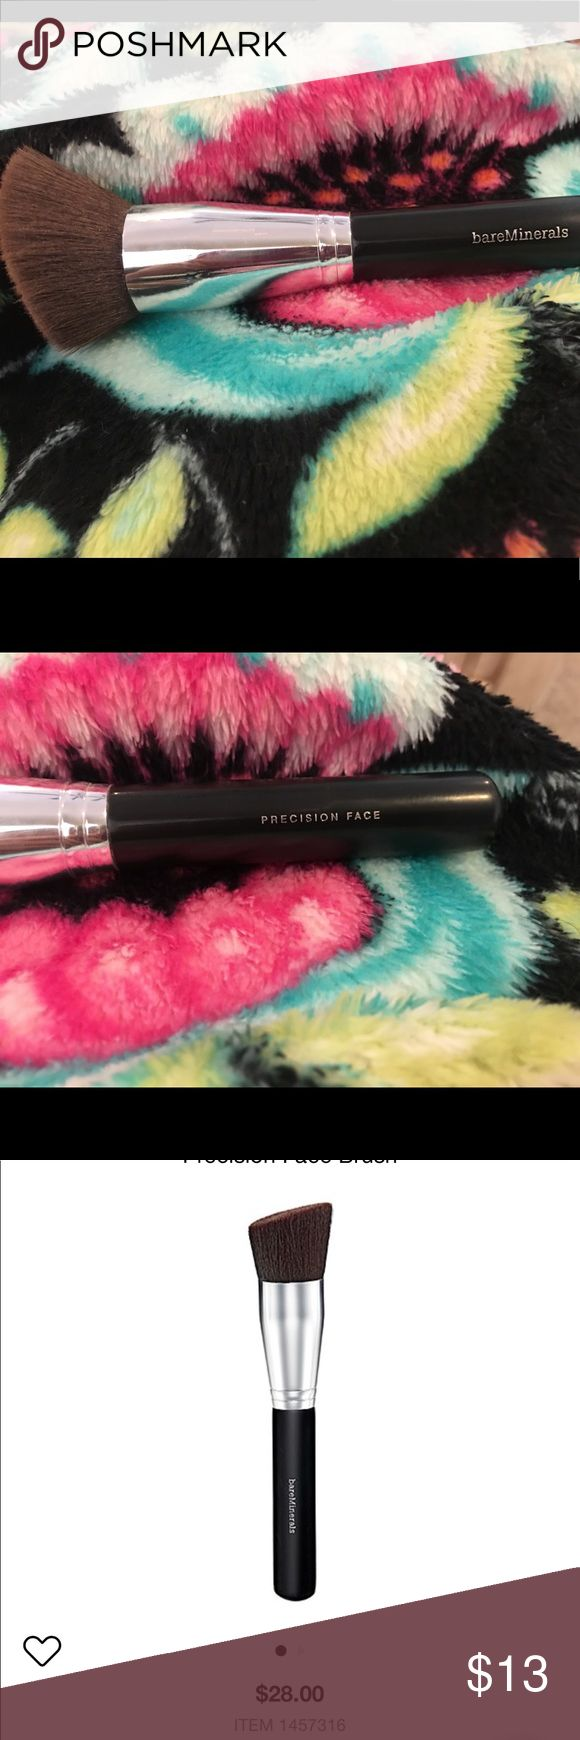 BareMinerals Precision Face Foundation Brush Used a few times. I'm getting rid of tons of my Bare Minerals Stash so check my closet to make a bundle! This brush has been cleaned and sterilized! Bare Escentuals Makeup Brushes & Tools